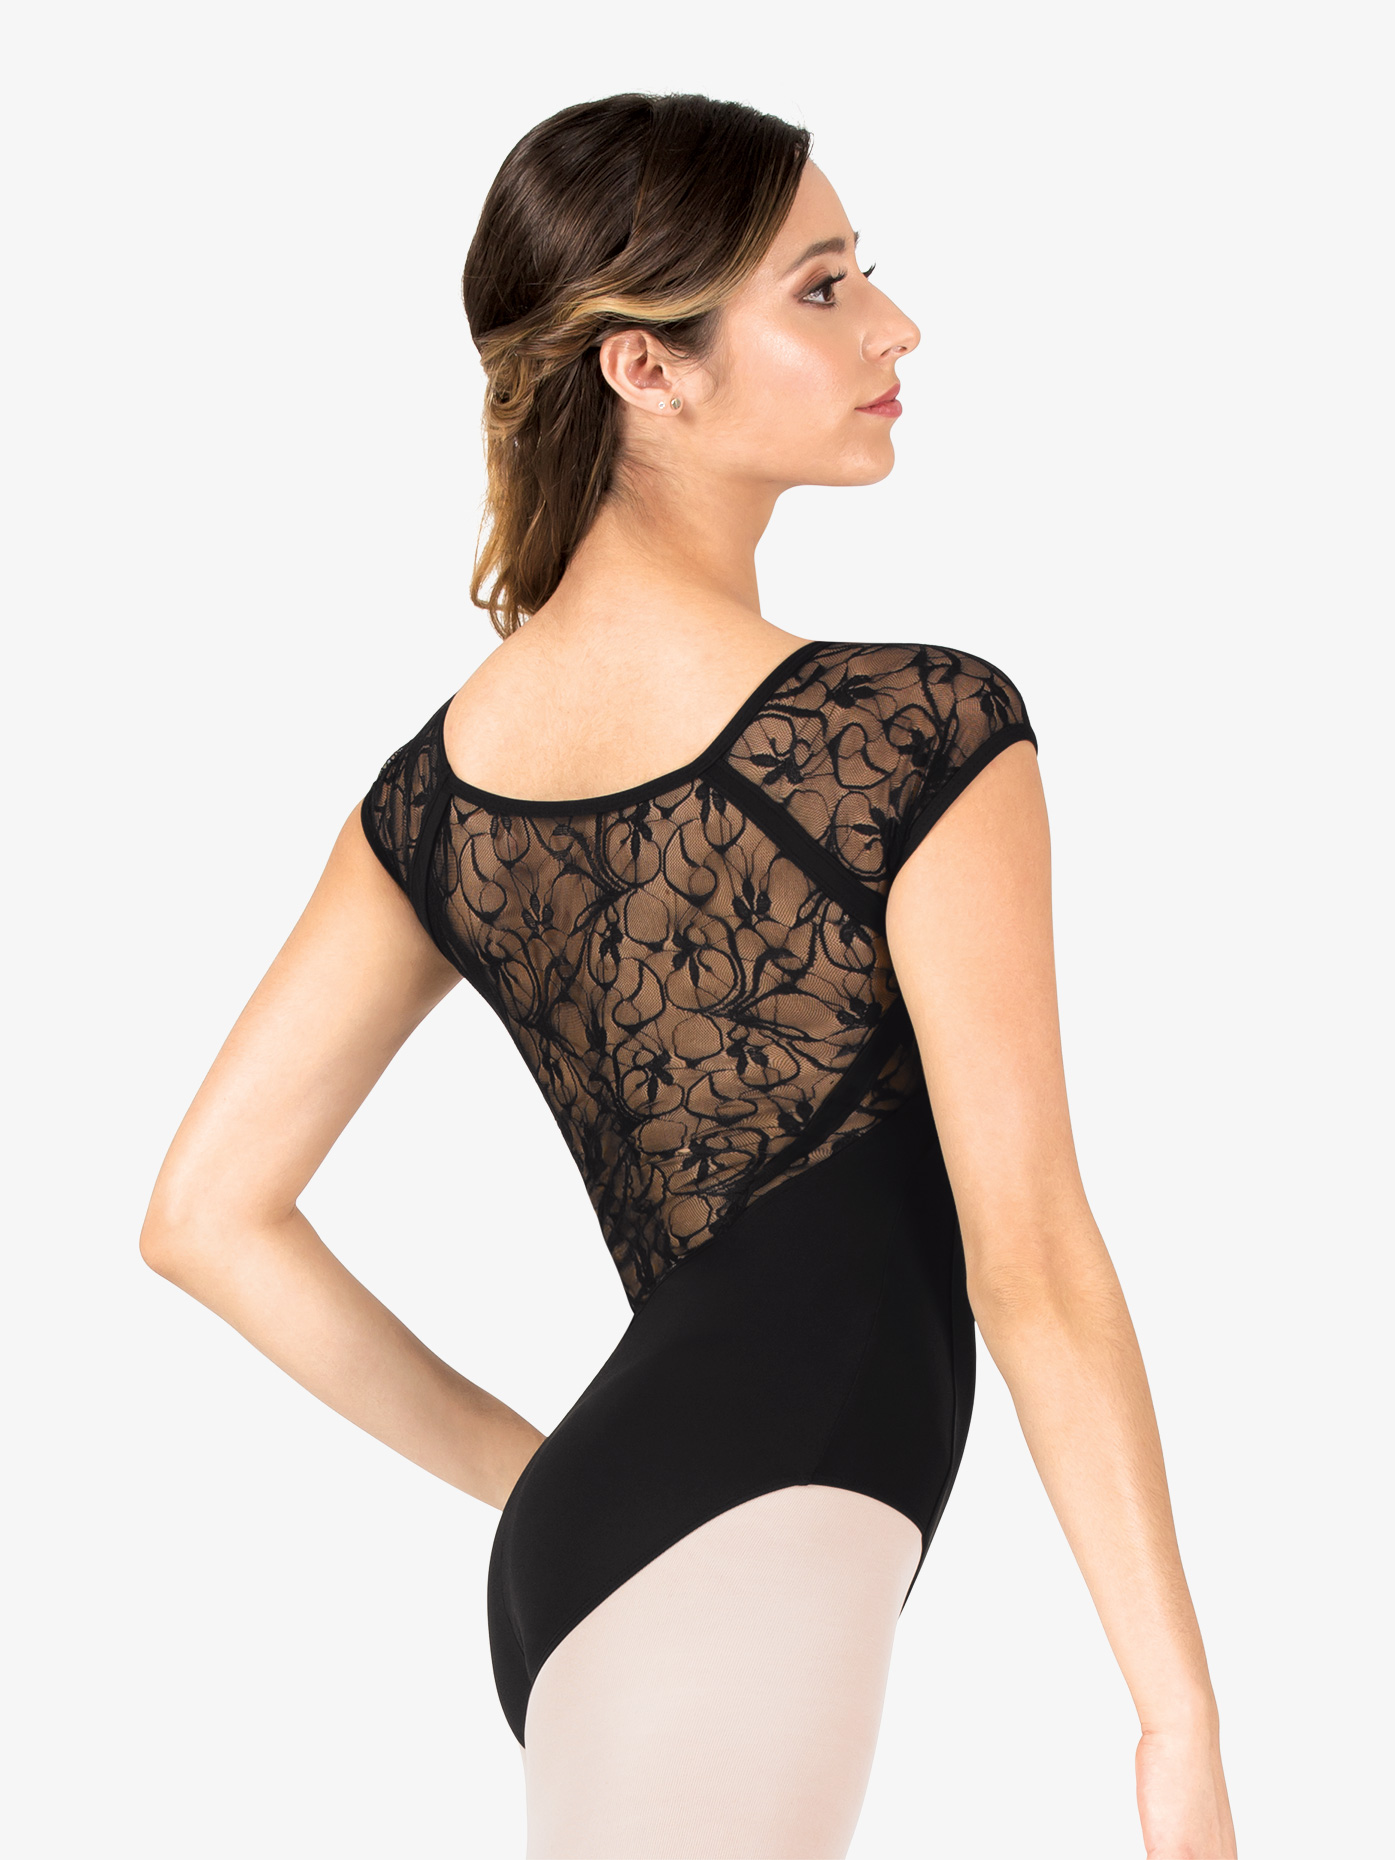 Danznmotion Womens Swirl Lace V-Front Cap Sleeve Leotard D2737A